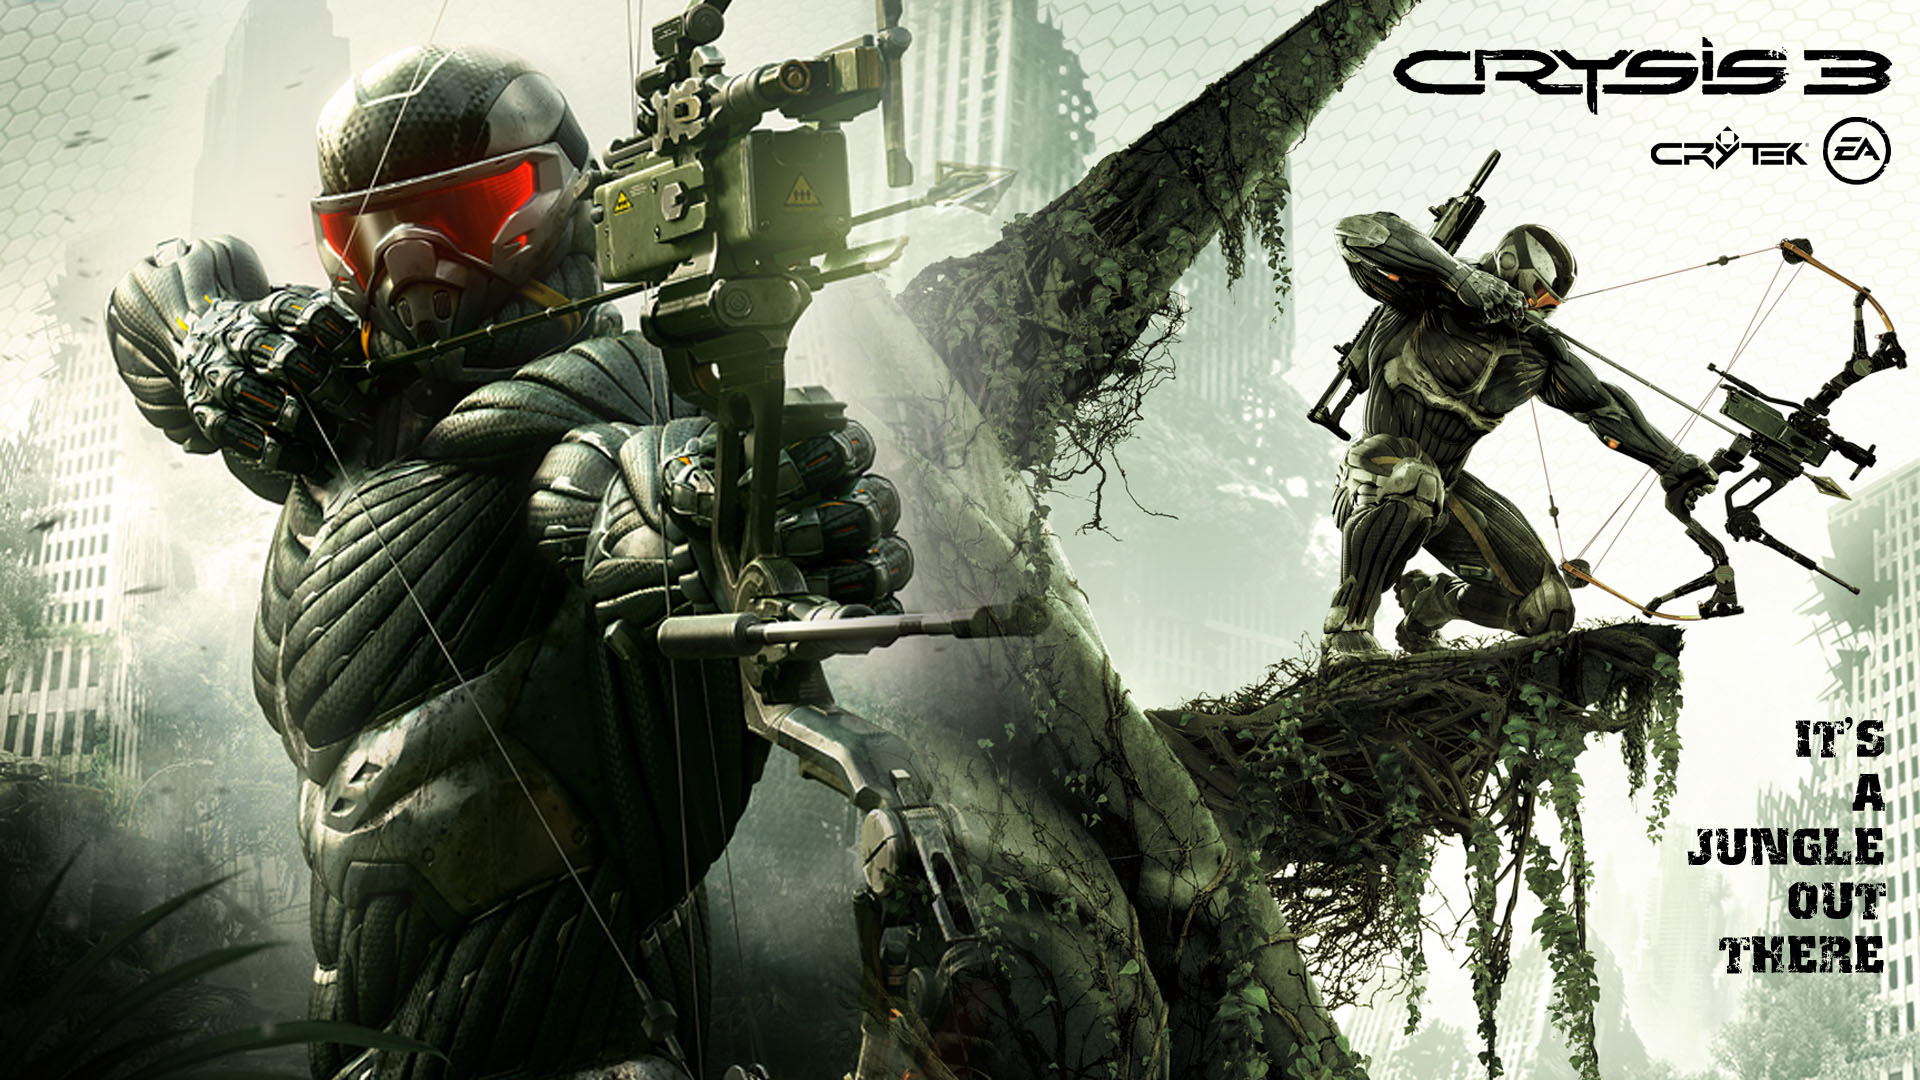 Crysis 3 Wallpaper Image Picture